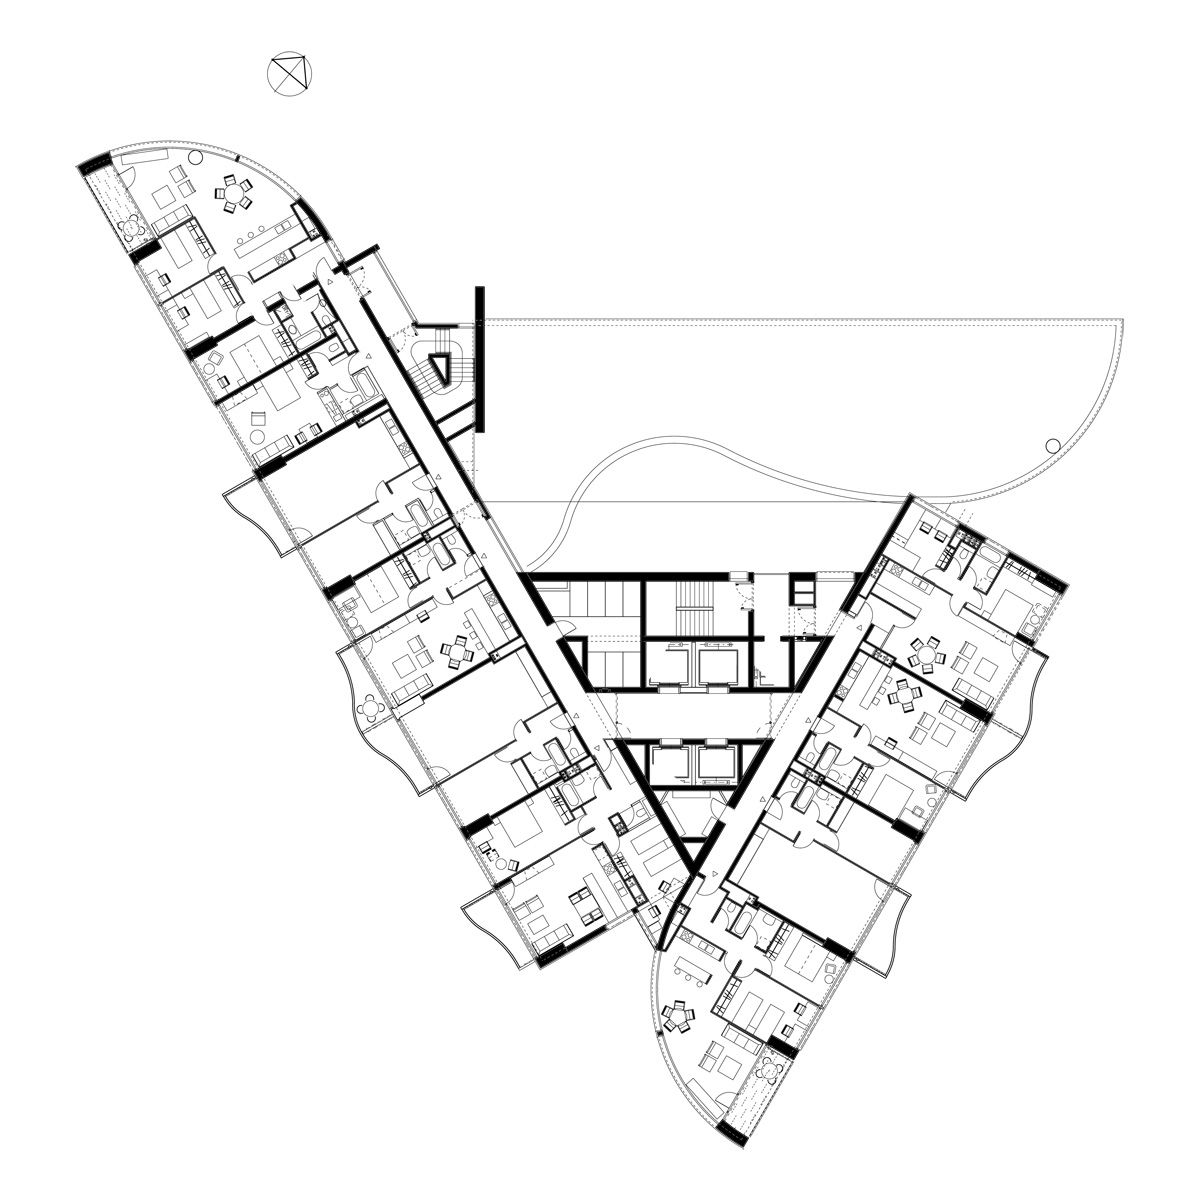 H Seidler Viena The Extended Triangular Plan Shape Of The 32 Storey Tower Is Derived From The